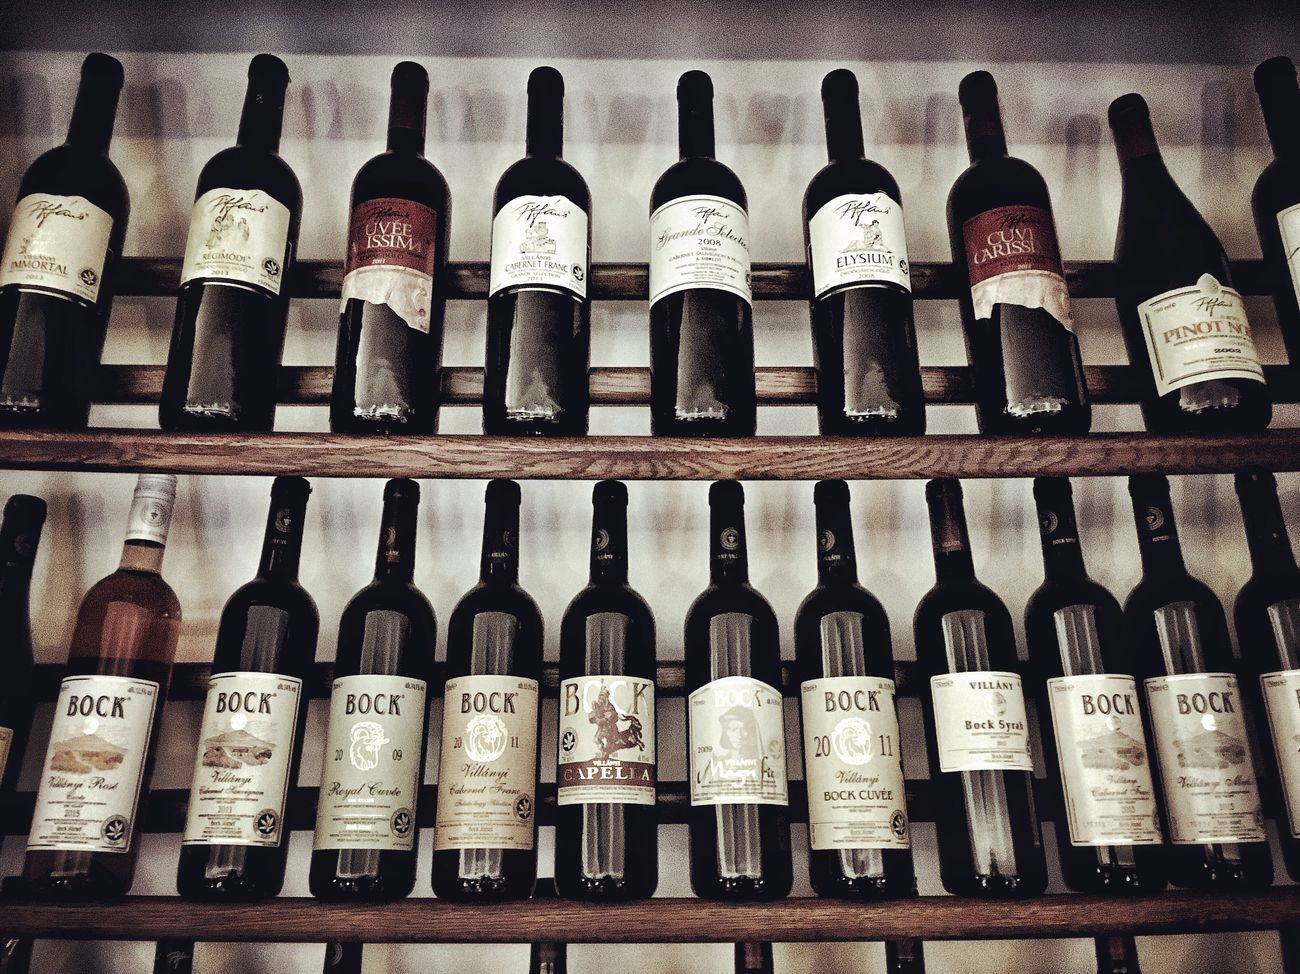 Wines Wineshelf Iphoneps Iphonephotography Iphoneonly Iphonephoto Snapseed ShotOnIphone